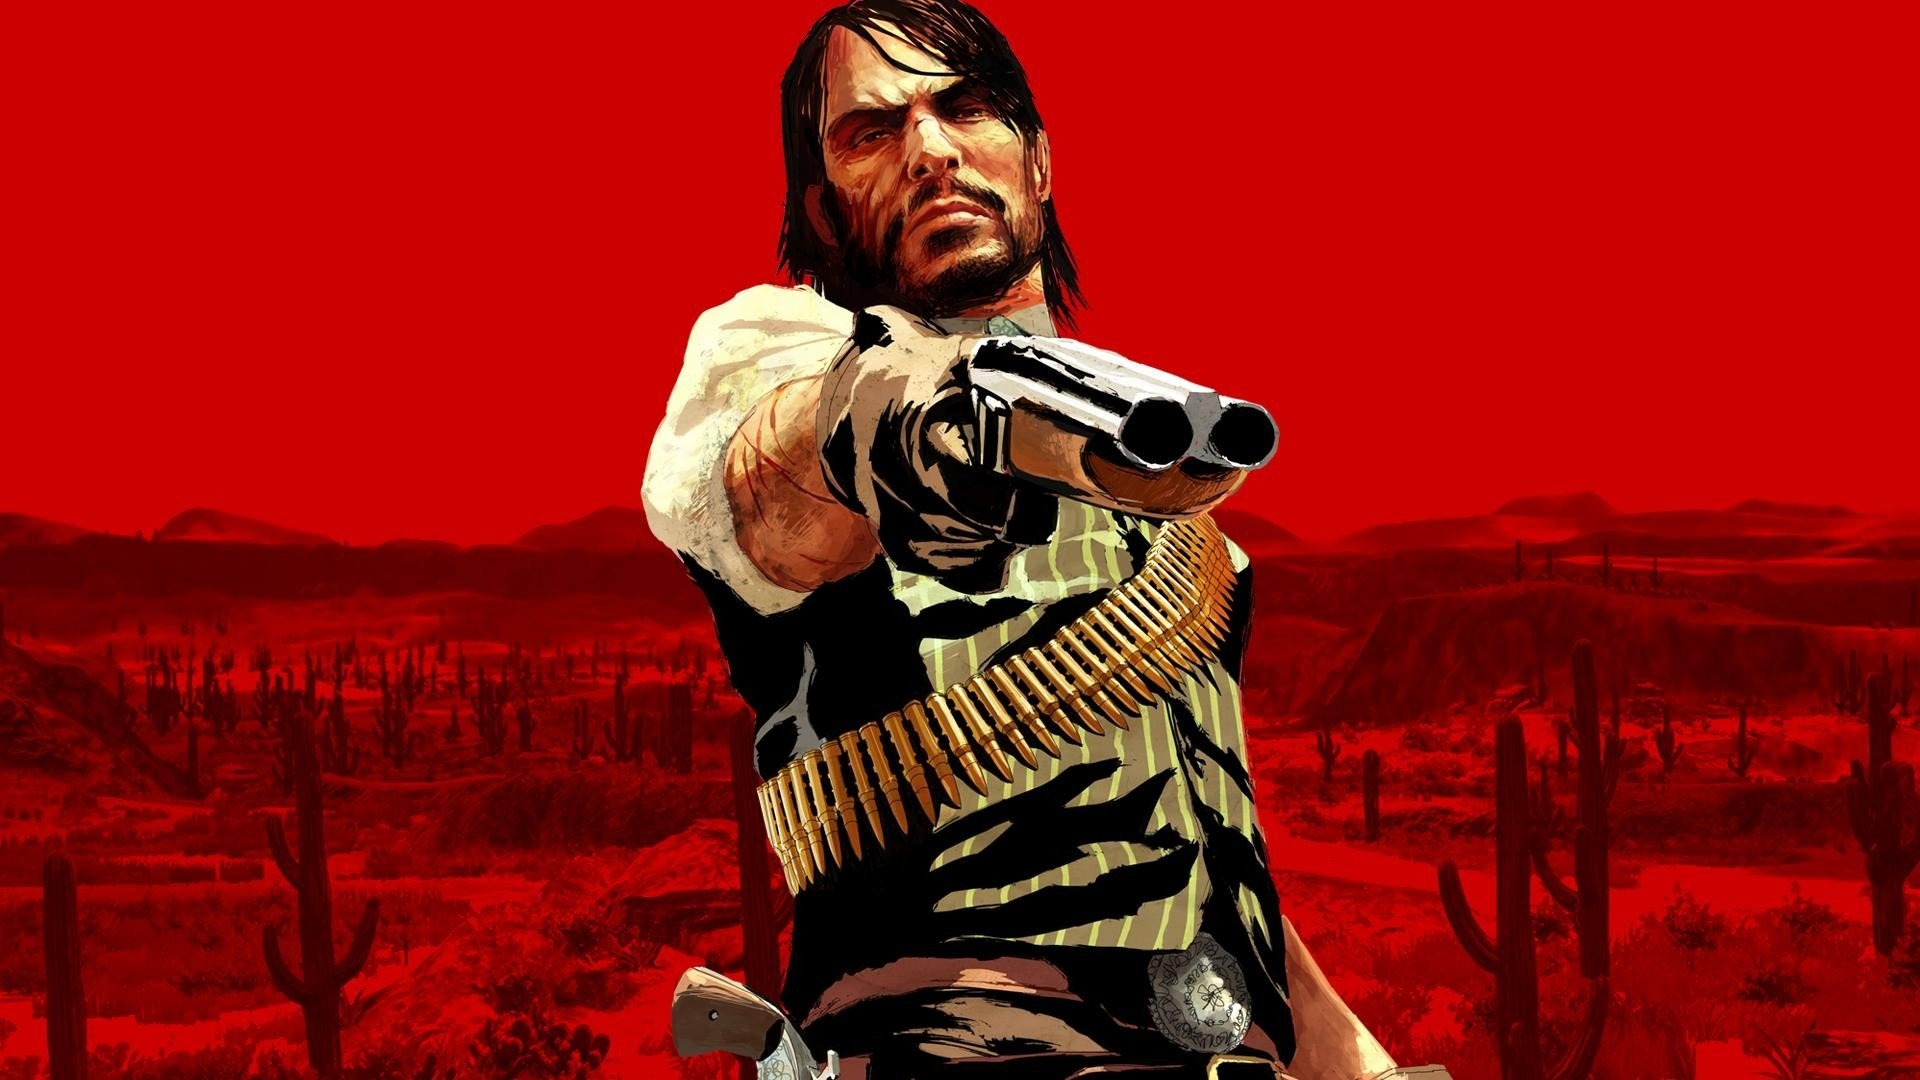 Today on Impulse, we discuss our favorite memories from Red Dead Redemption screenshot